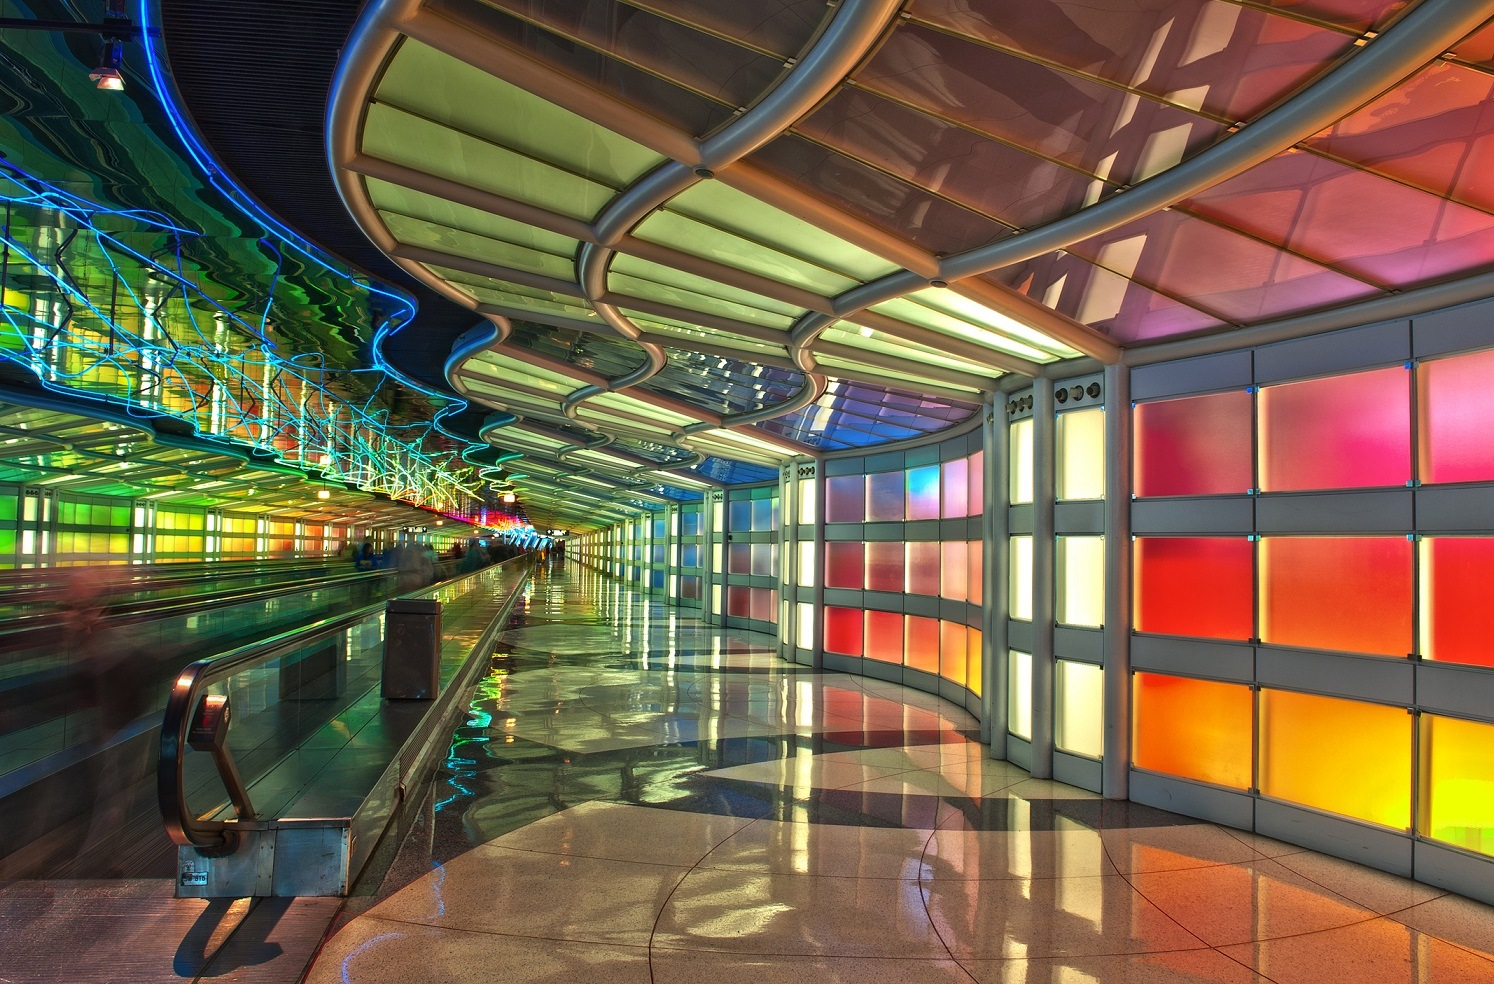 Passenger Tunnel, Chicago O'Hare Airport